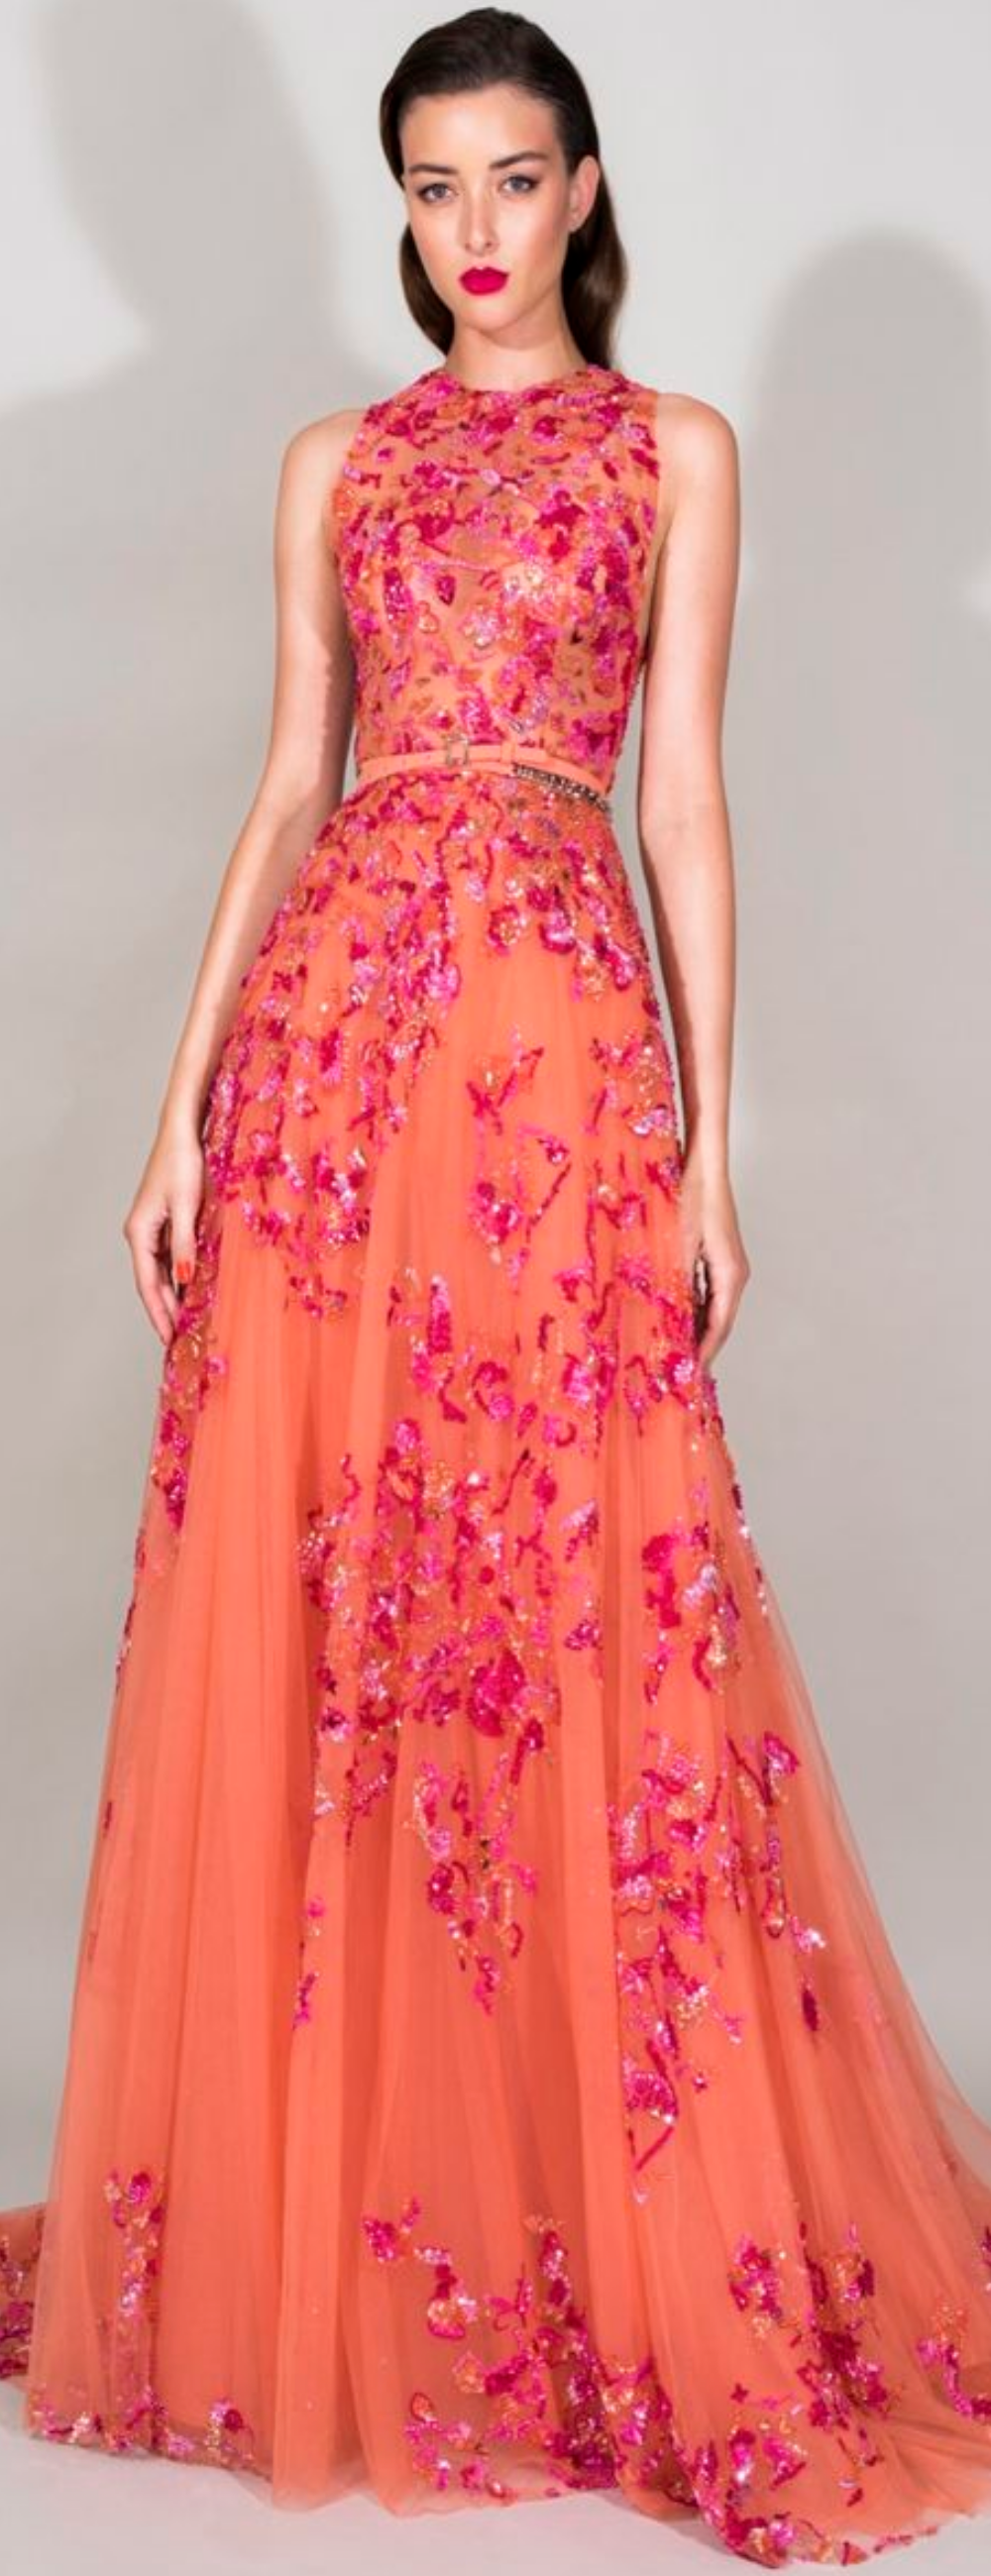 My Pink Orange World Mix šaty Pinterest Zuhair Murad - Models wearing amazing dresses in the worlds most beautiful locations